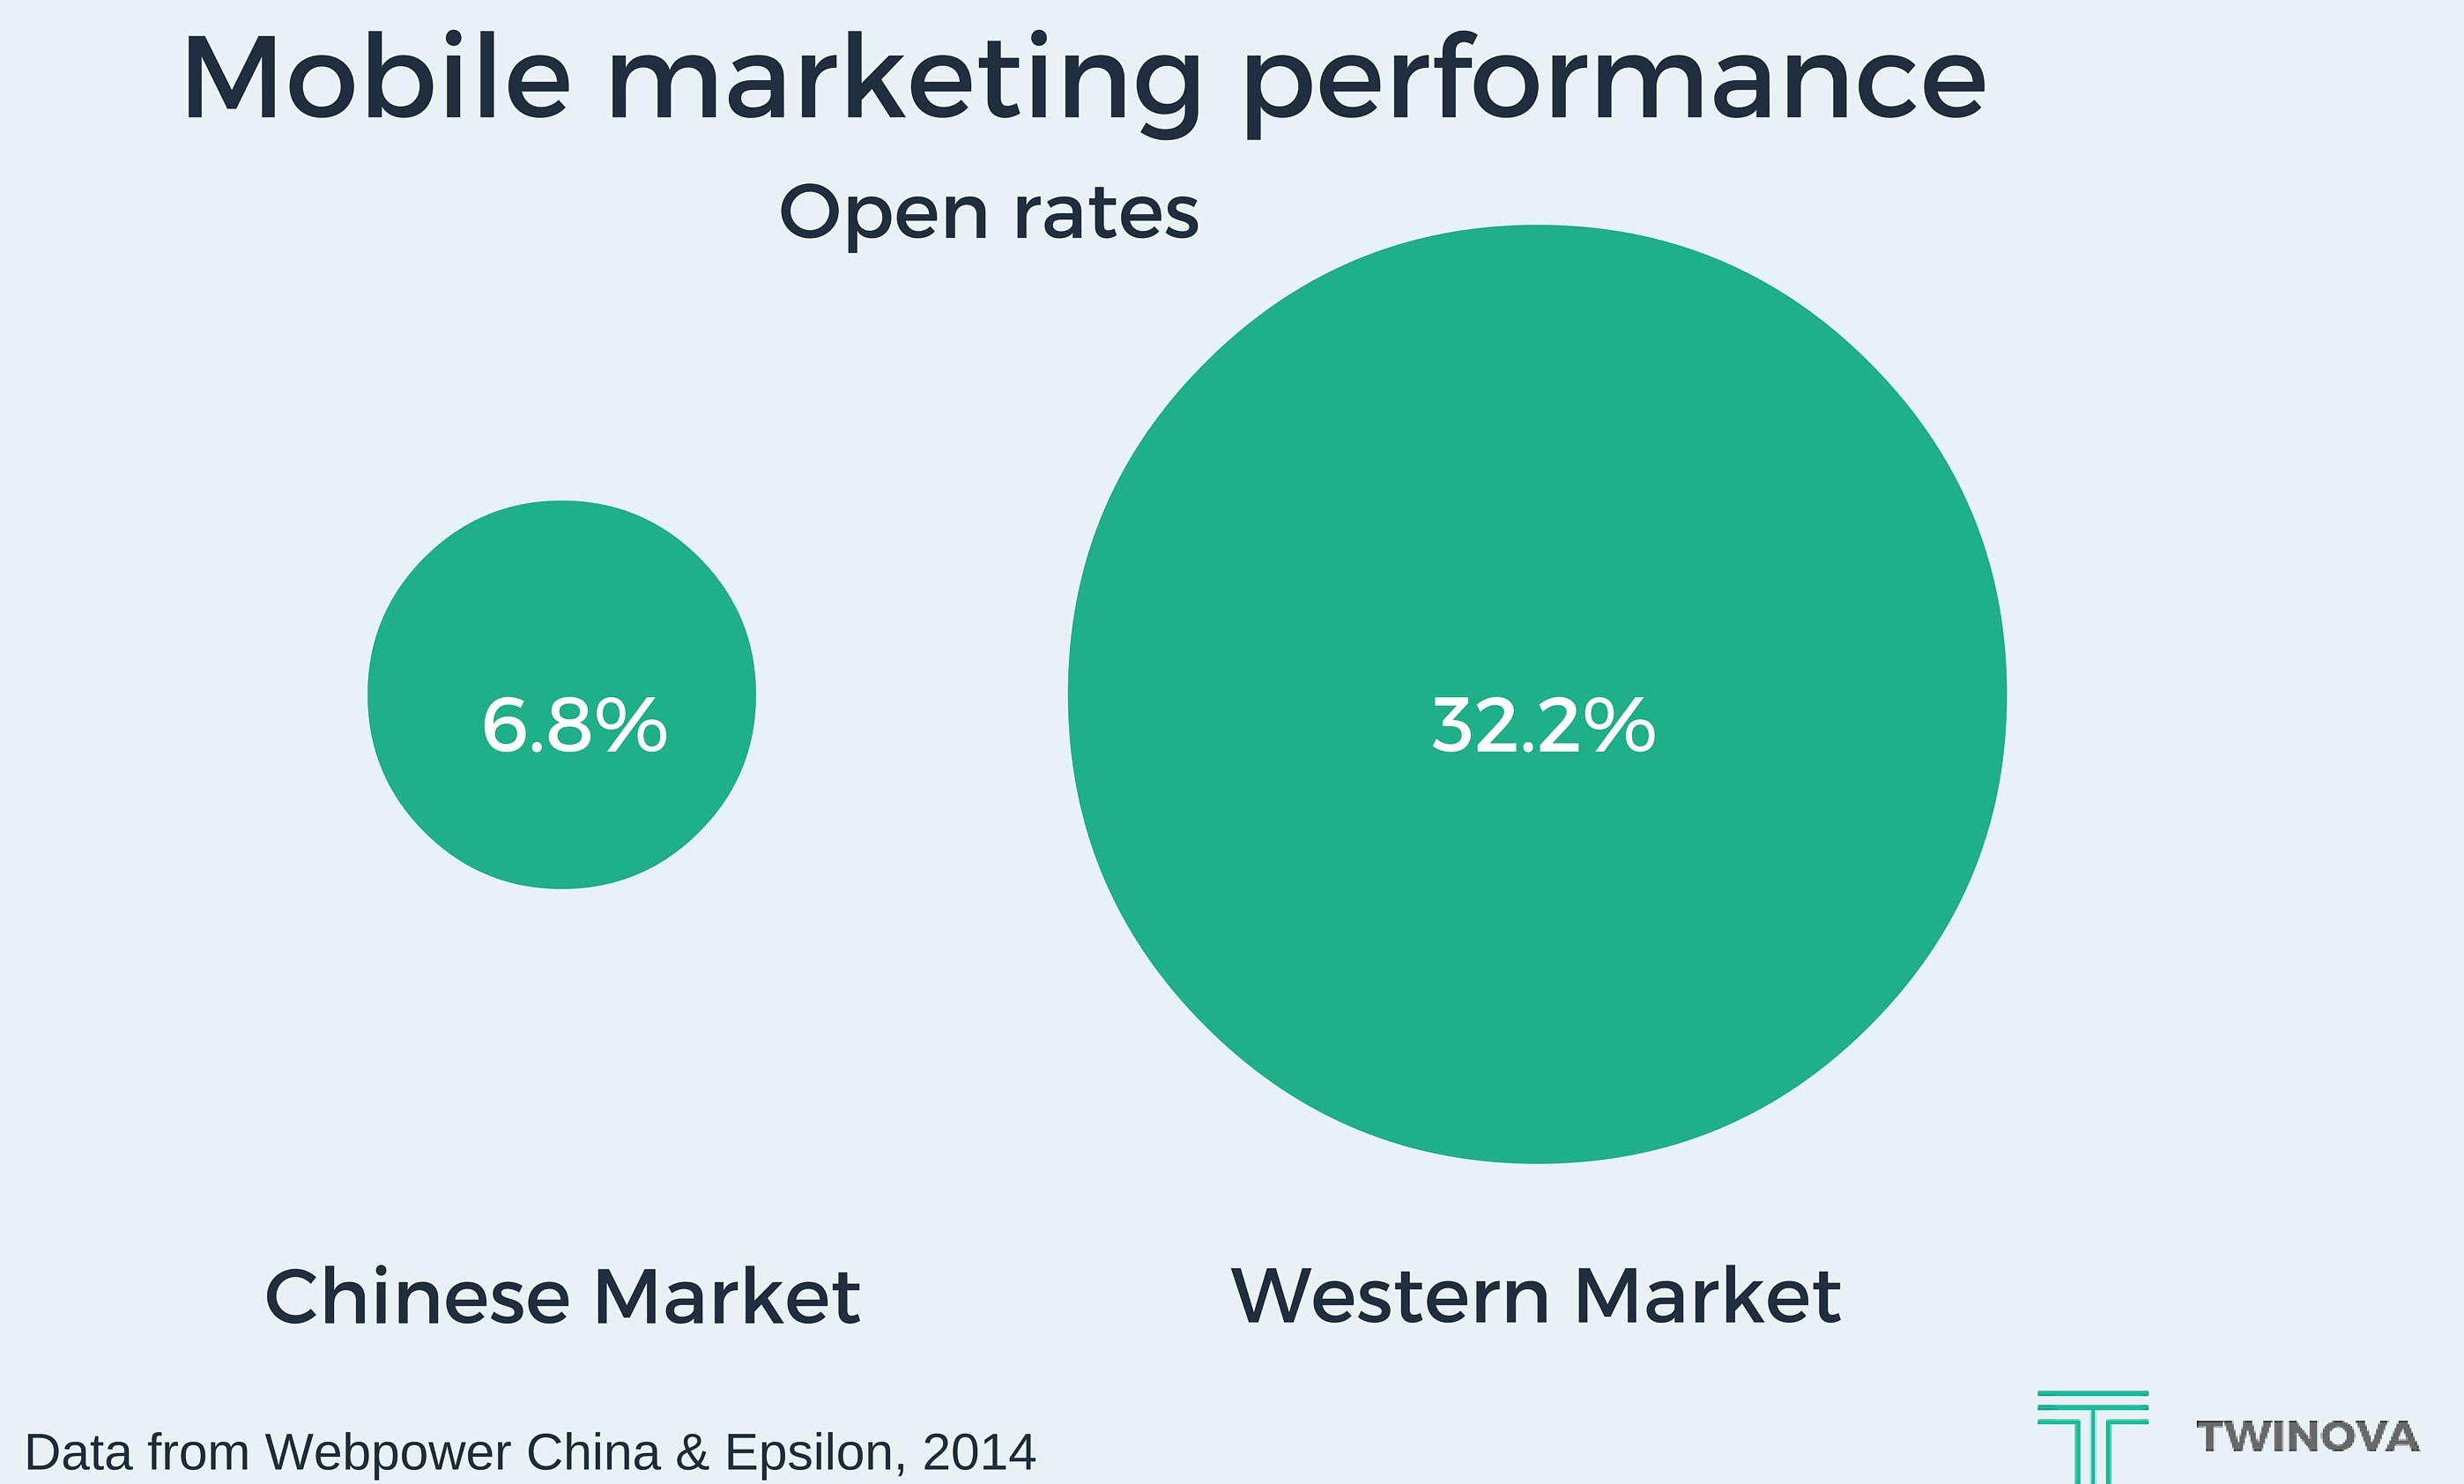 Mobile marketing performance on the Western and Chinese markets